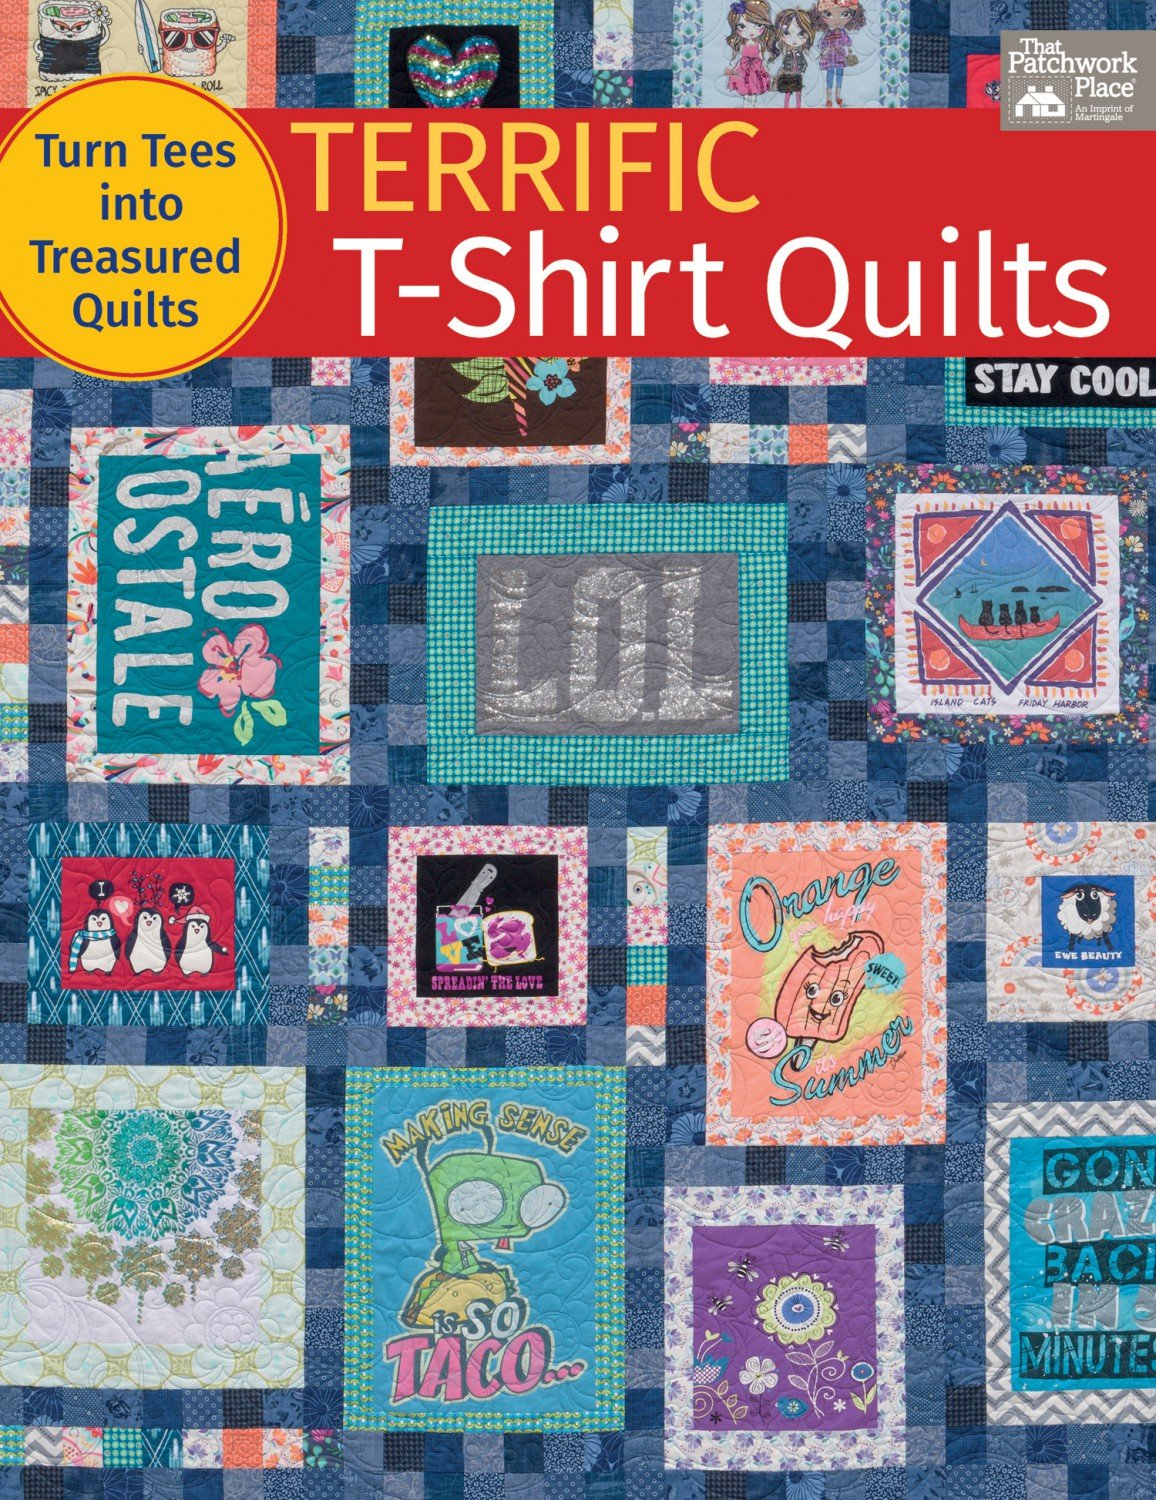 Terrific T-Shirt Quilts from Martingale